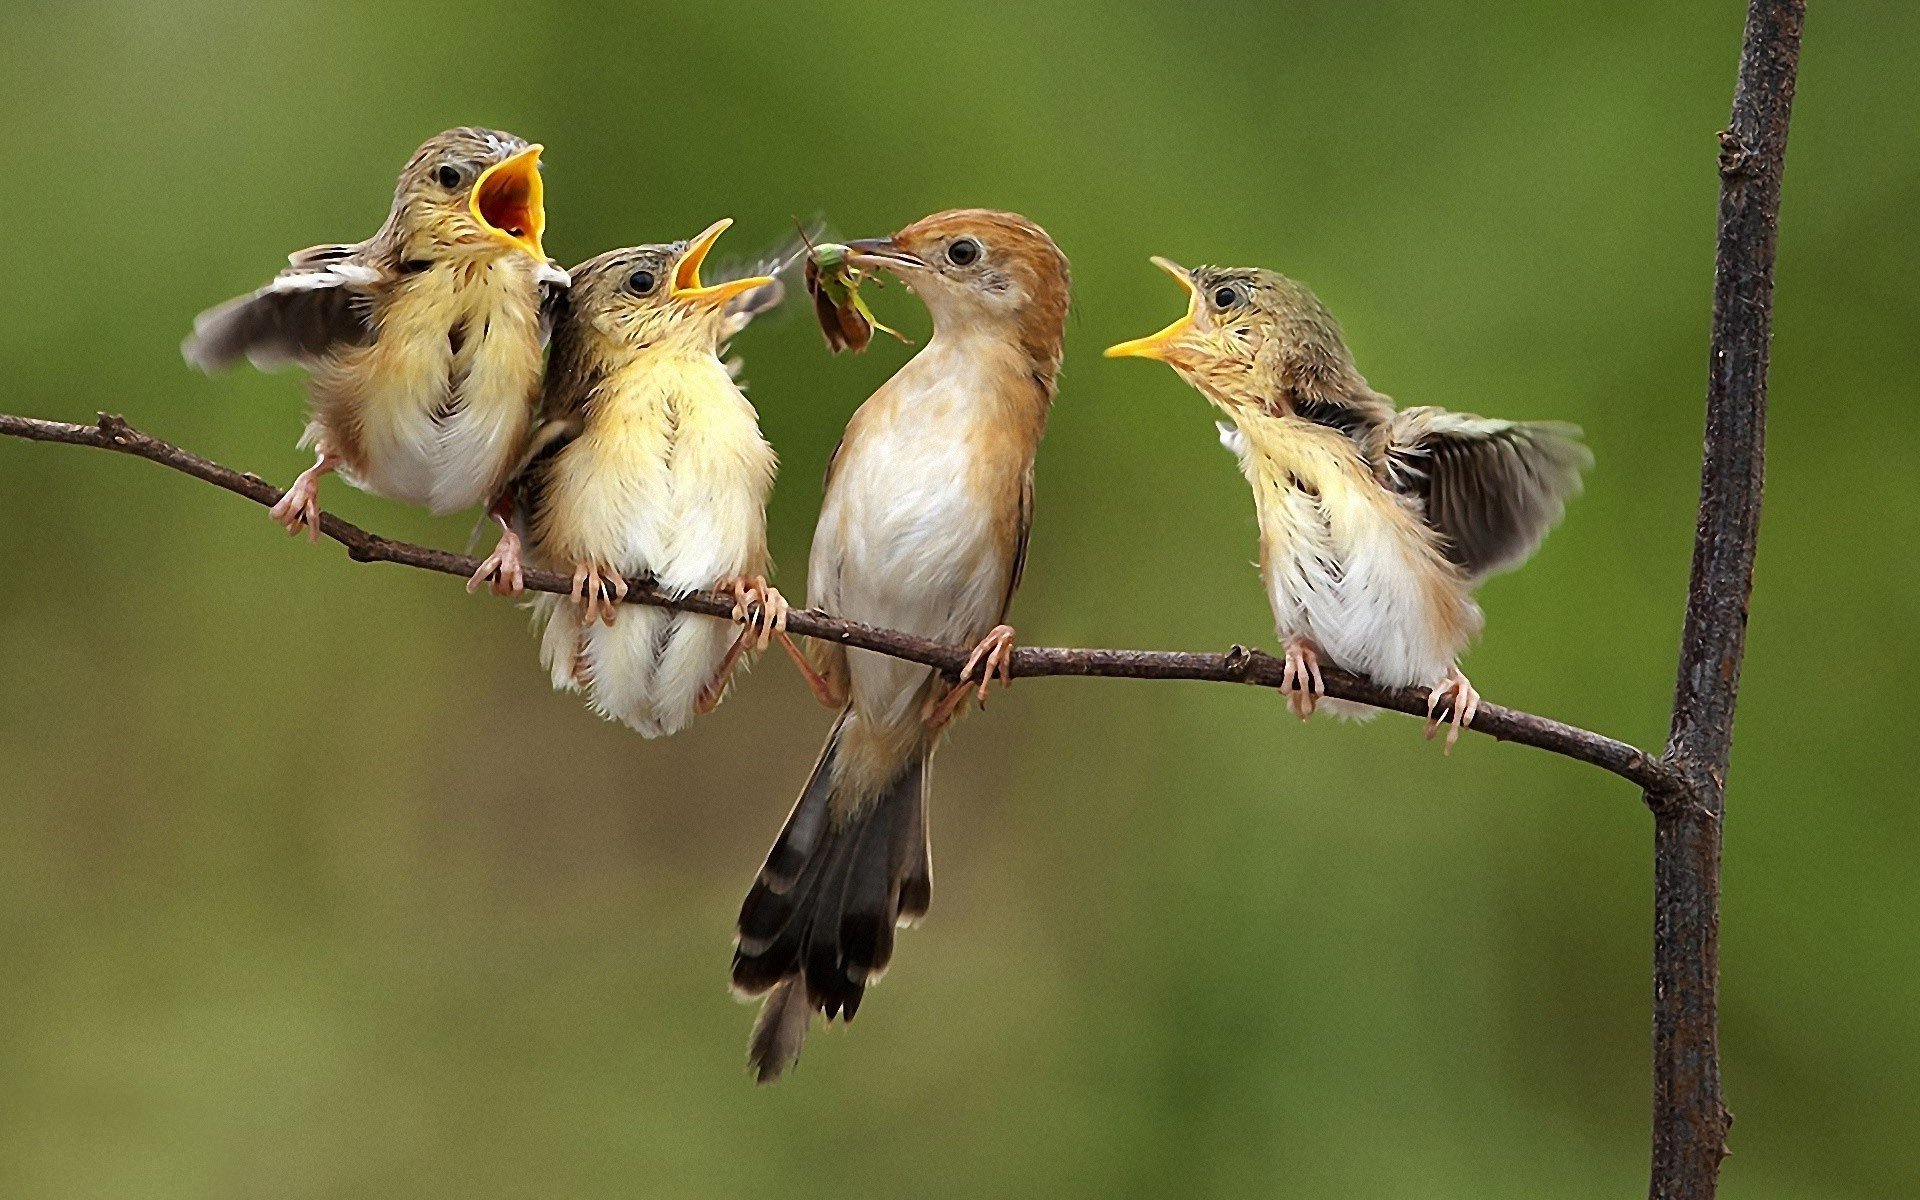 Artificial intelligence has learned to identify birds by their singing